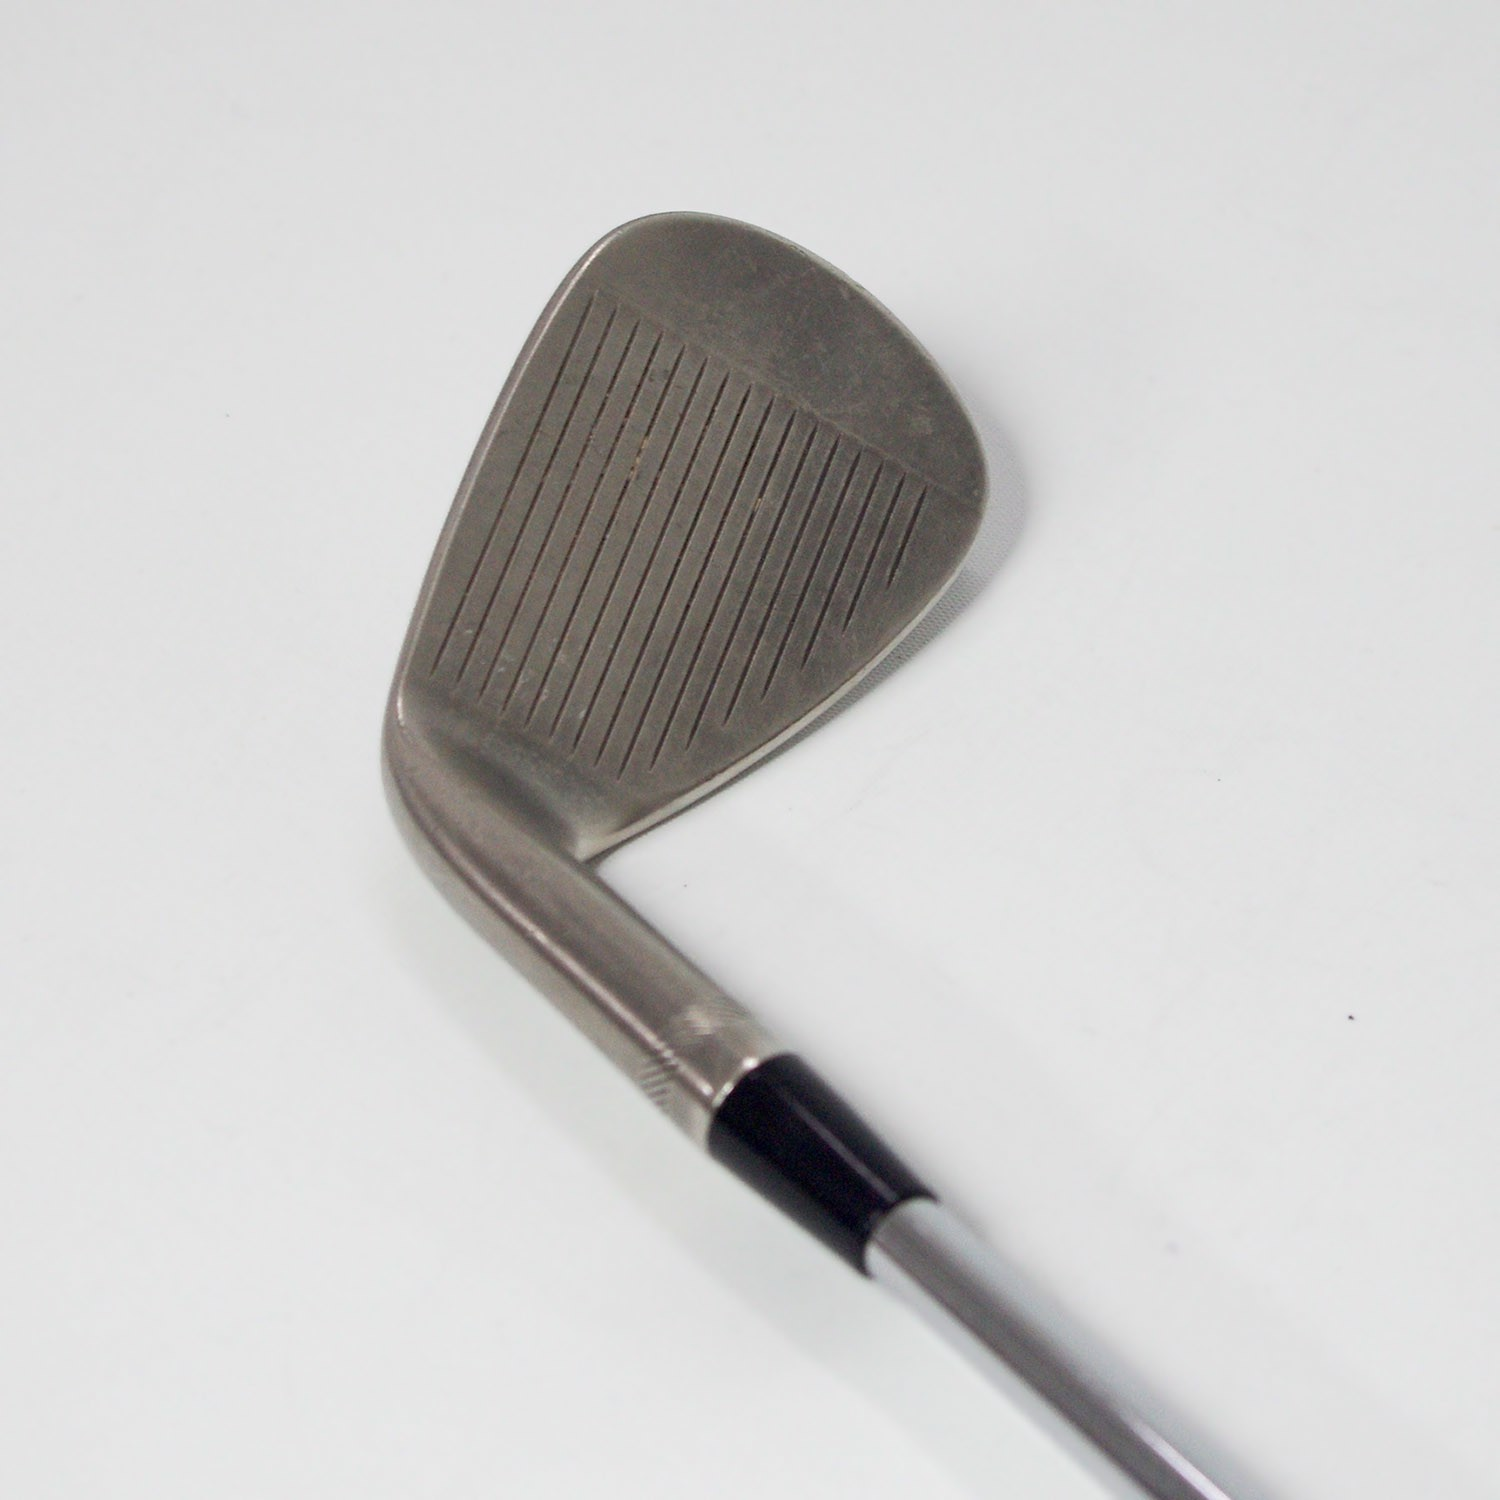 gậy golf Wedge cũ SM 6F 50/12 PCW-TL44 | Titleist